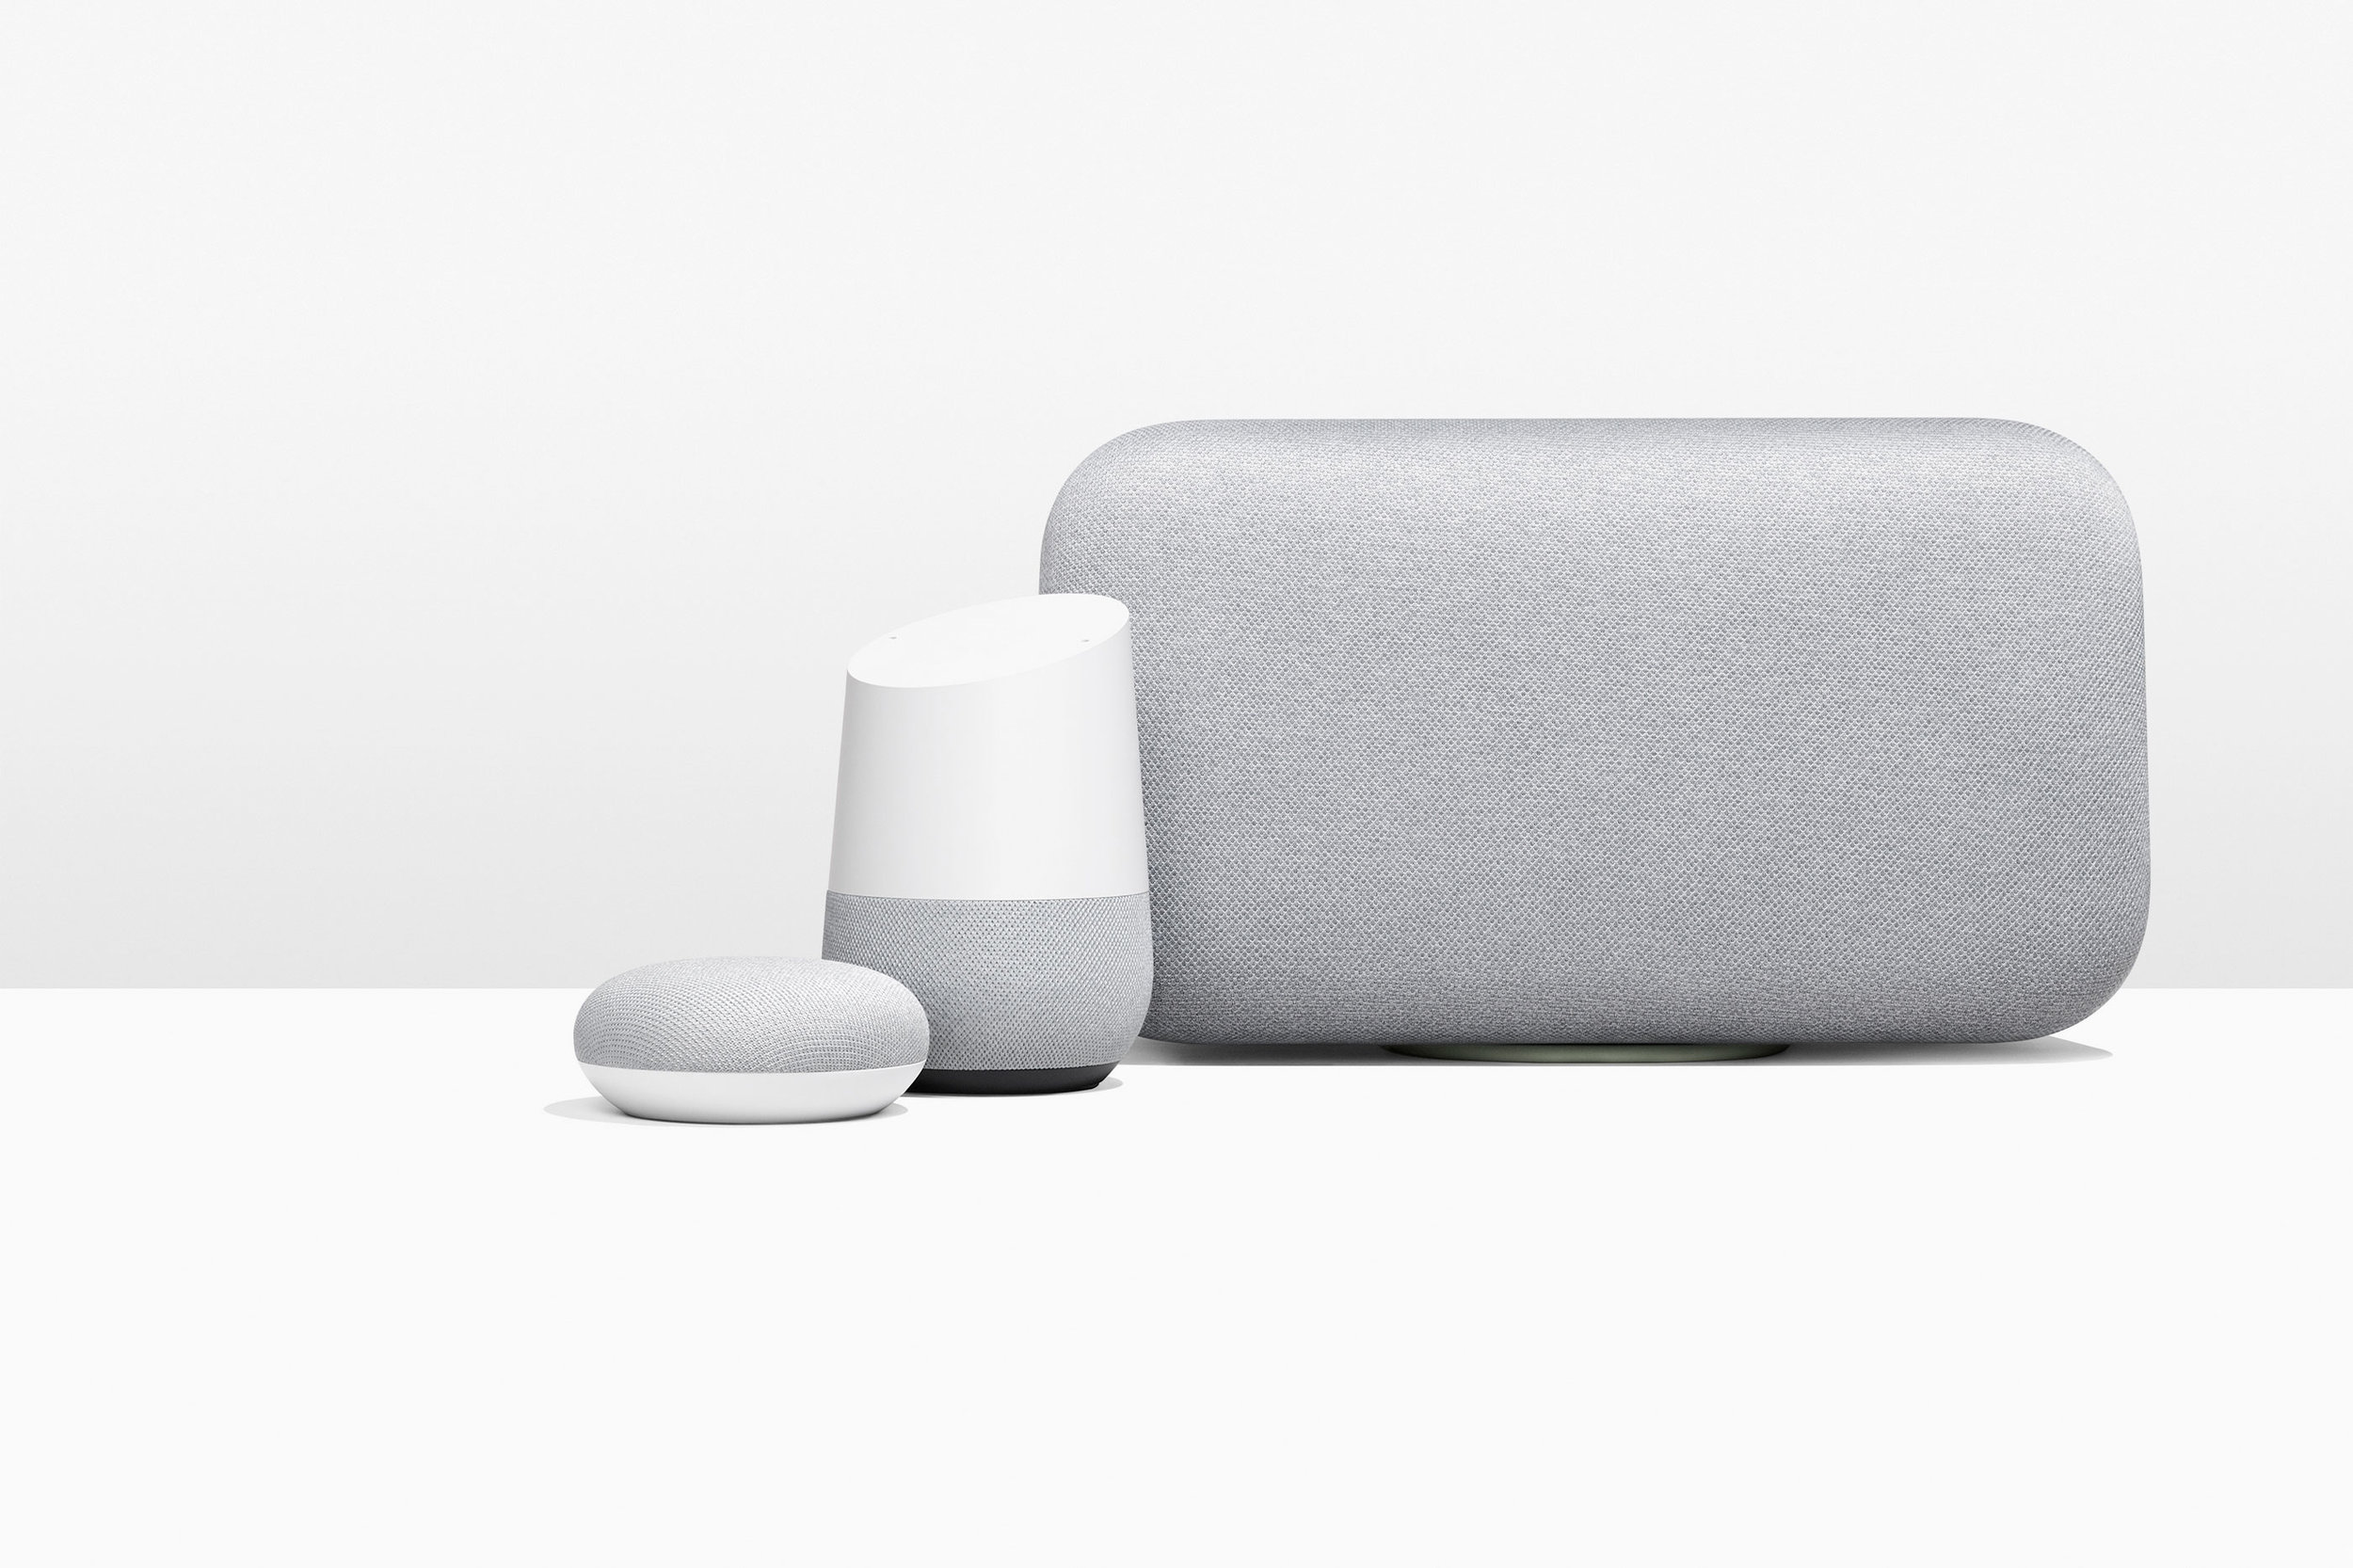 Google Home is a trademark of Google Inc.